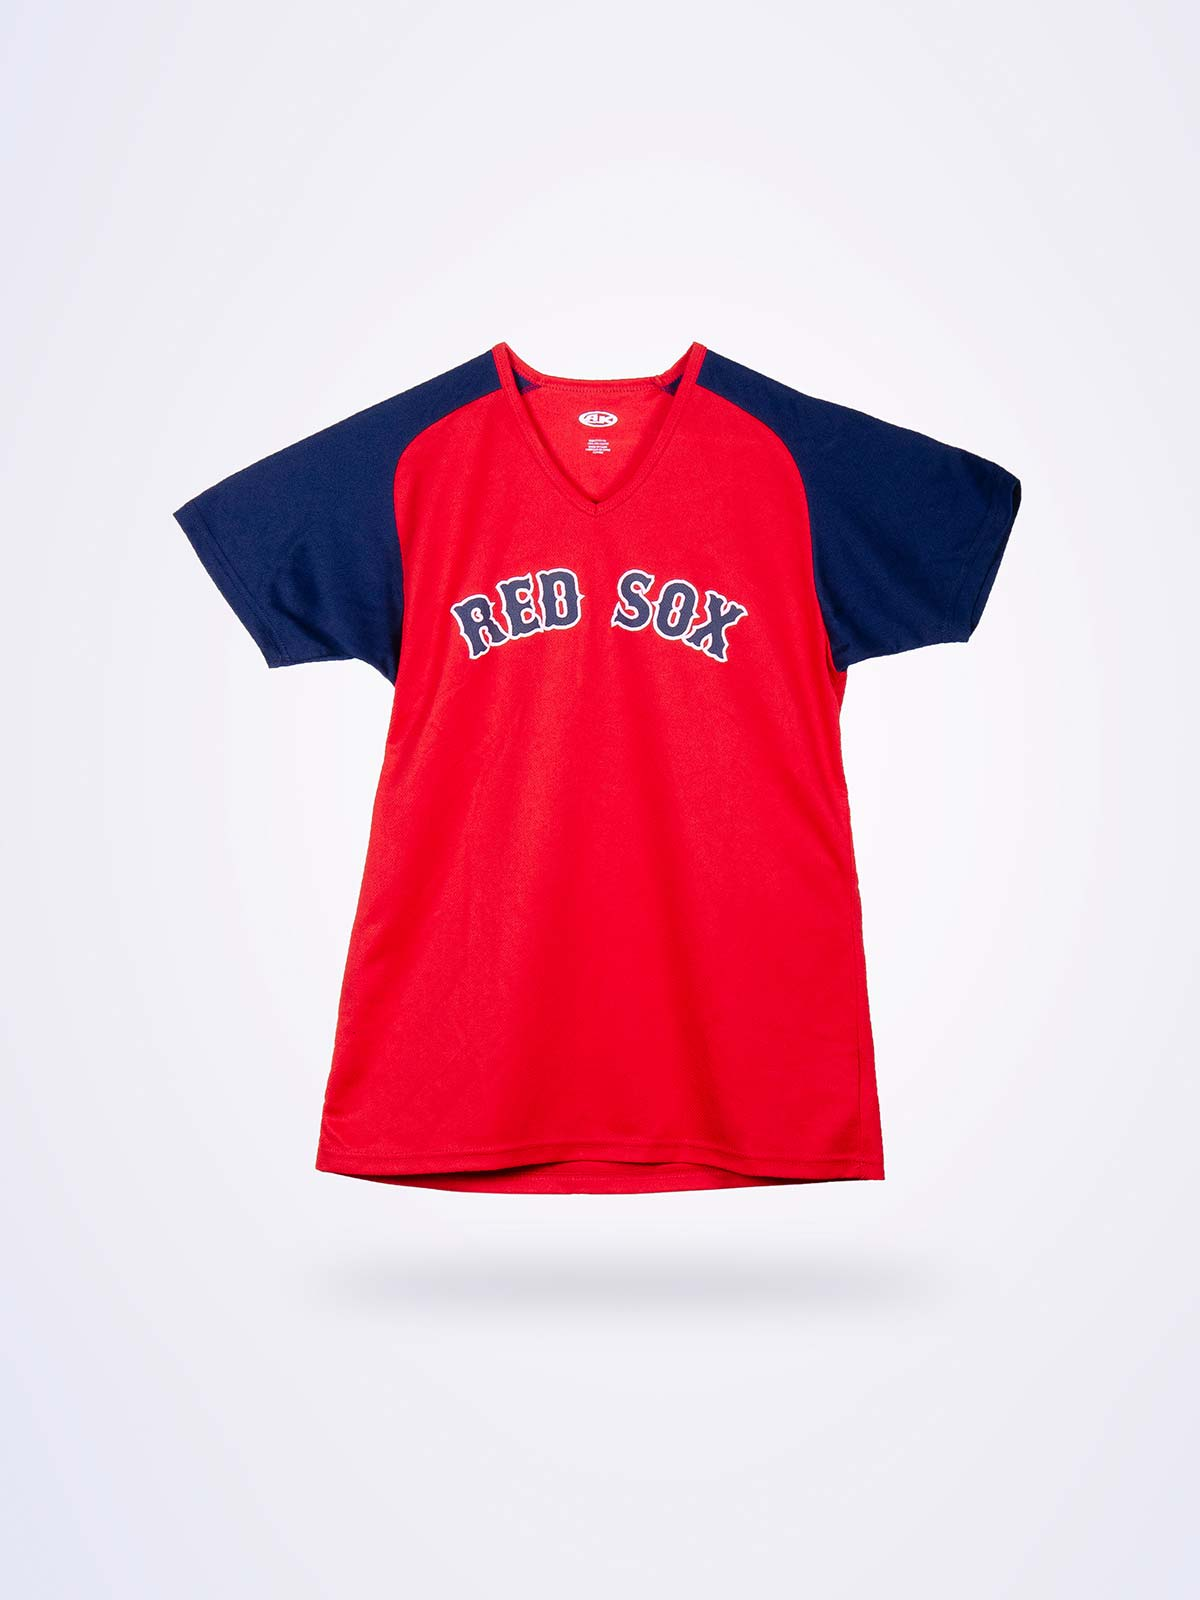 Mens Red Sox Fan Jersey - Red/Navy